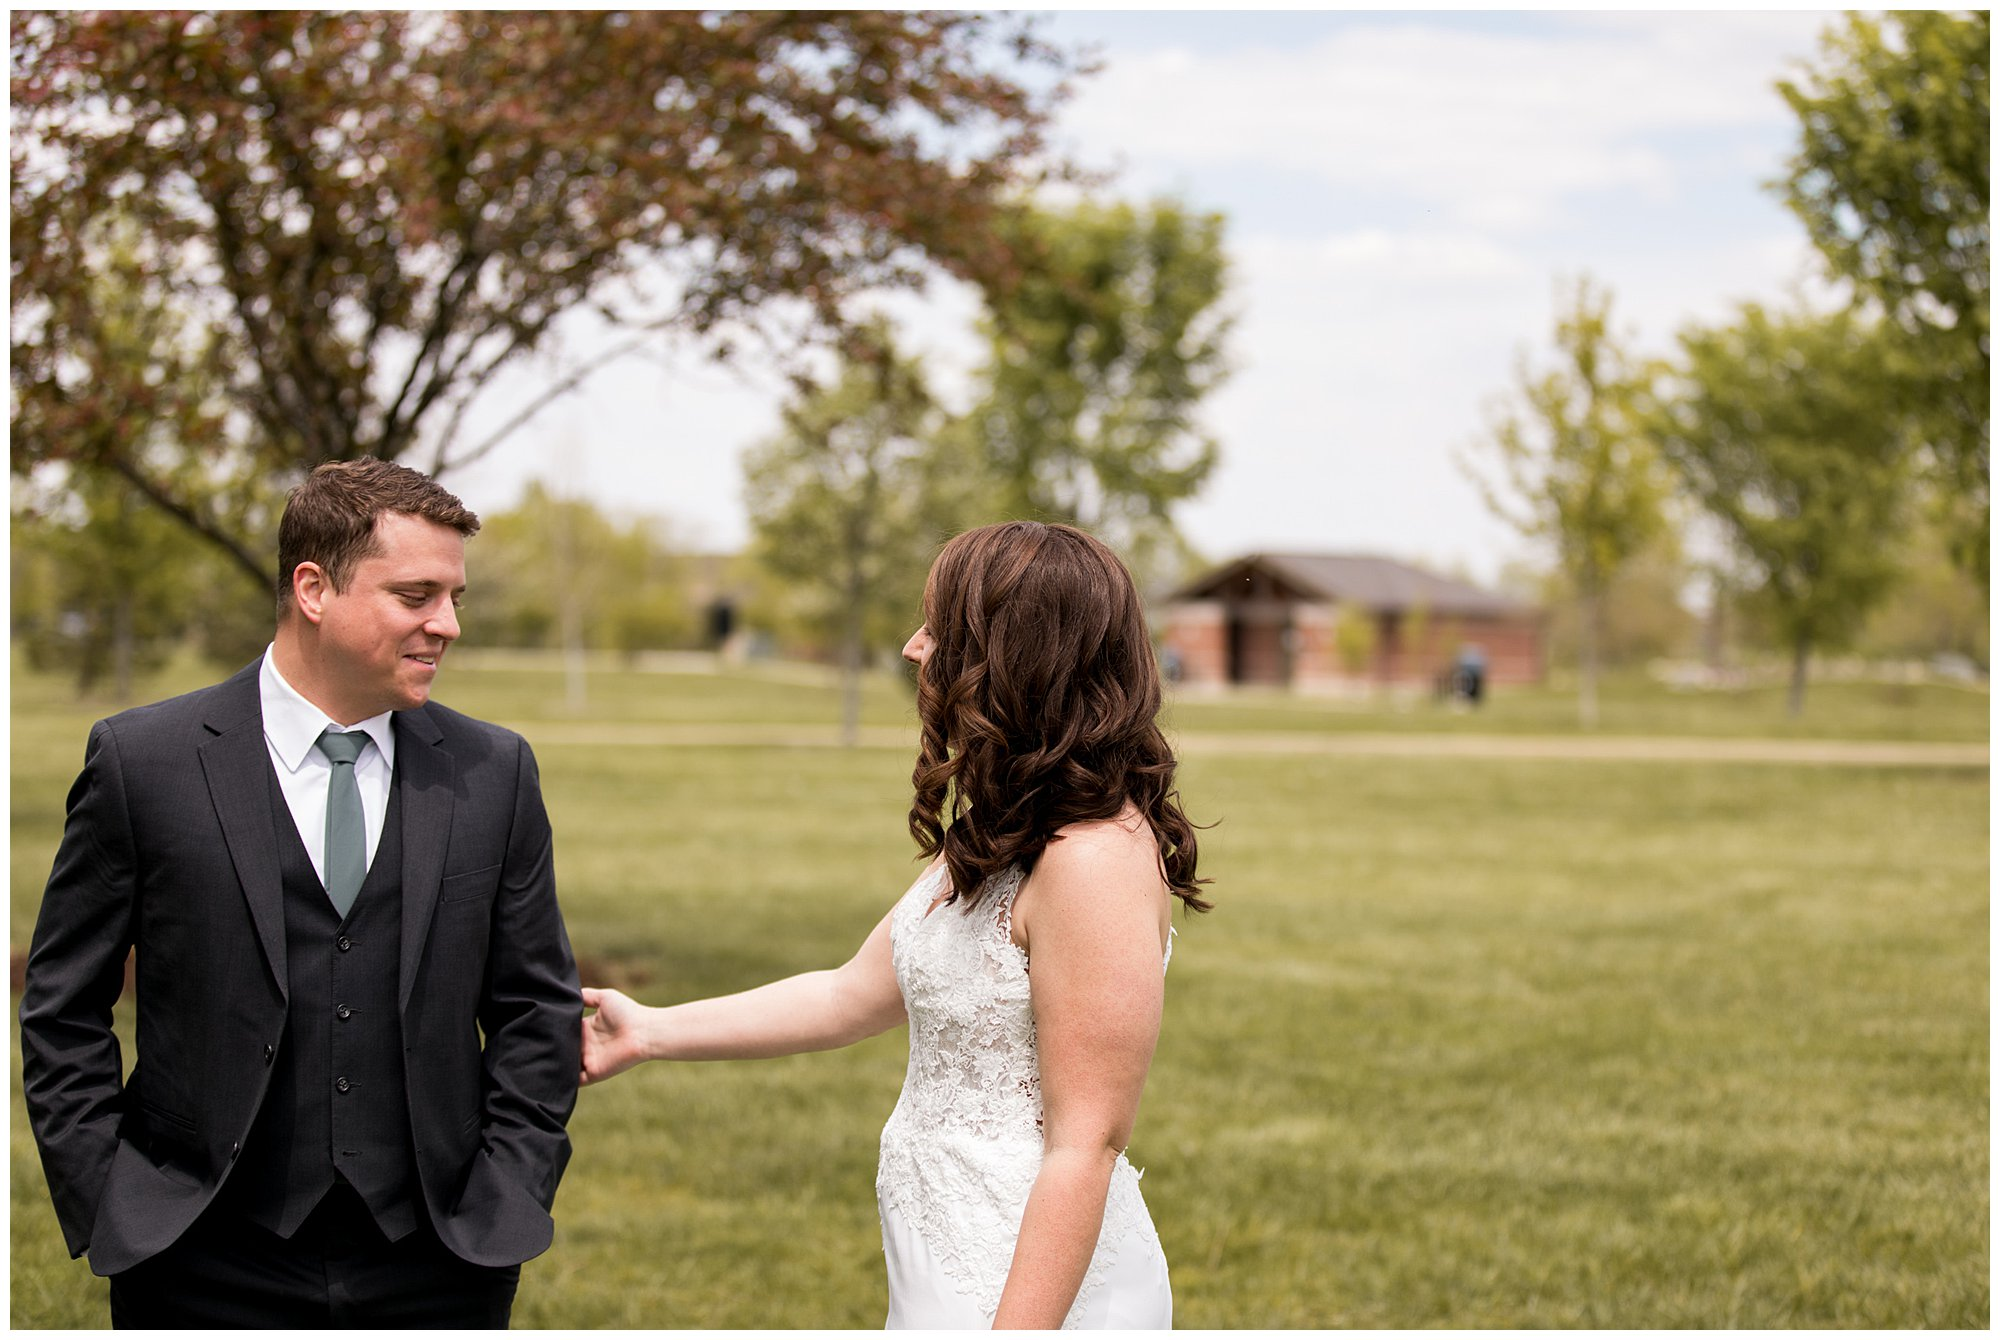 Bride and groom first look before wedding ceremony at Coxhall Gardens in Carmel Indiana